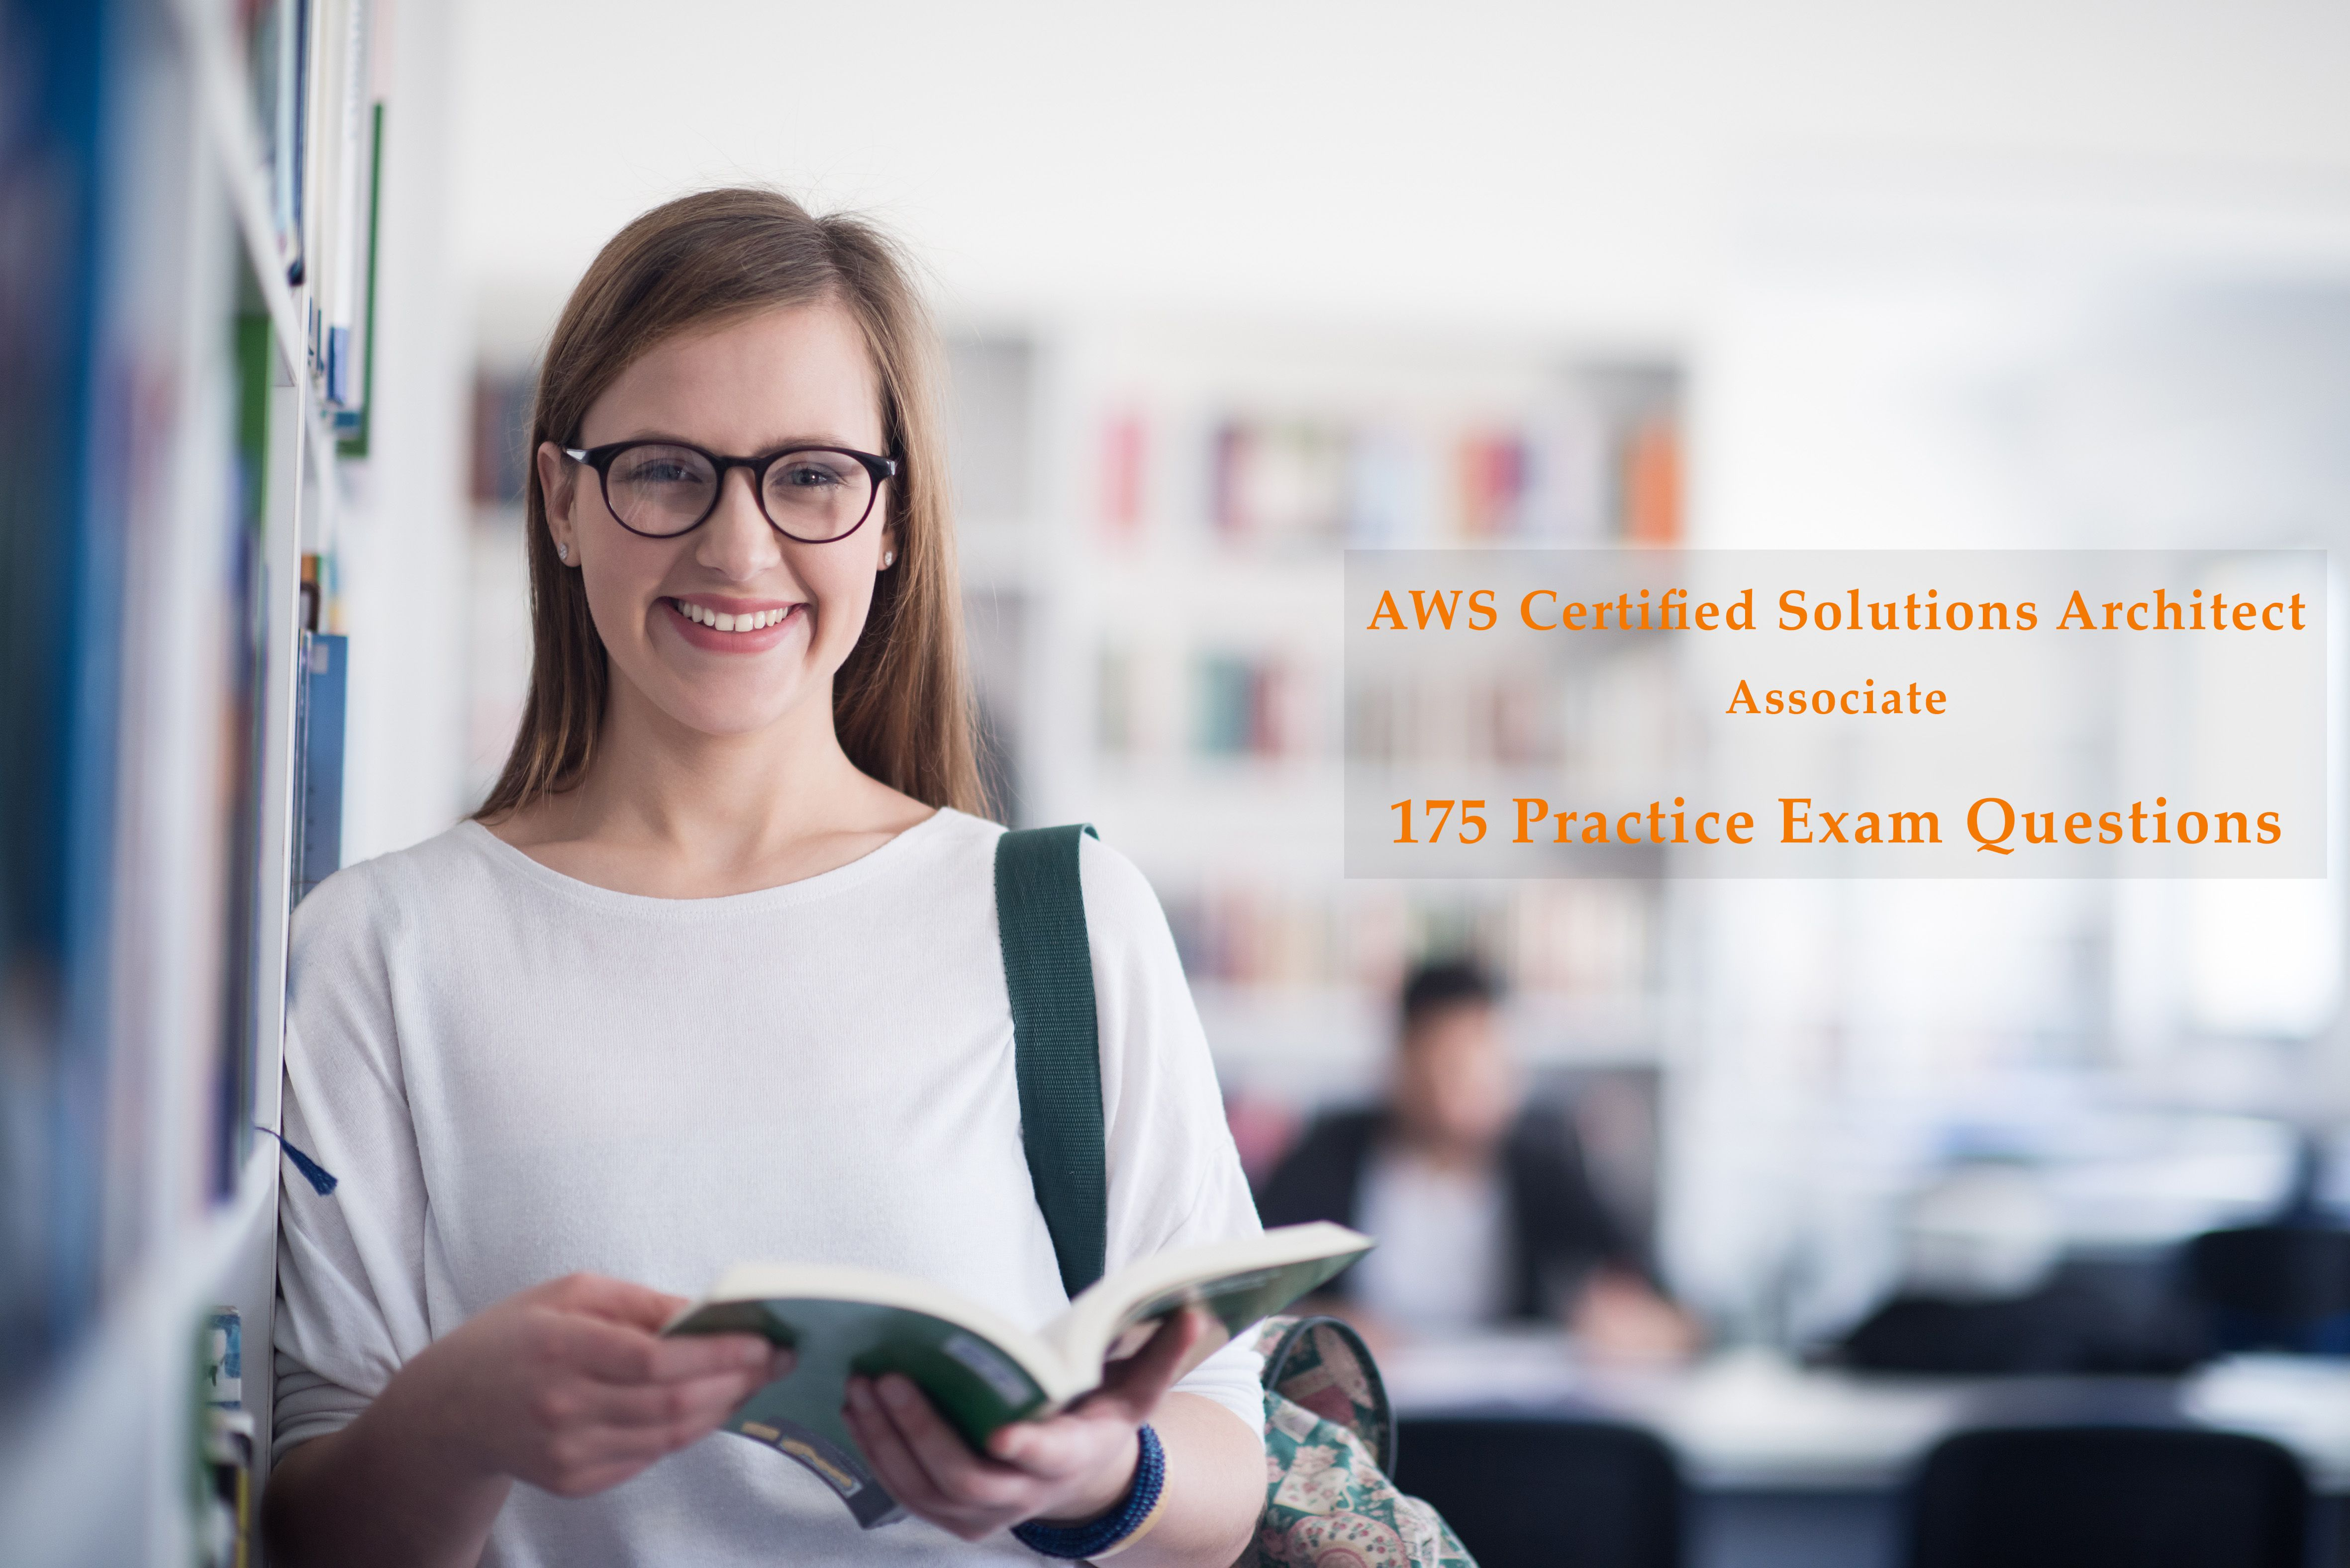 Amazon Aws Certification Courses And Practice Exam Simulator Aws